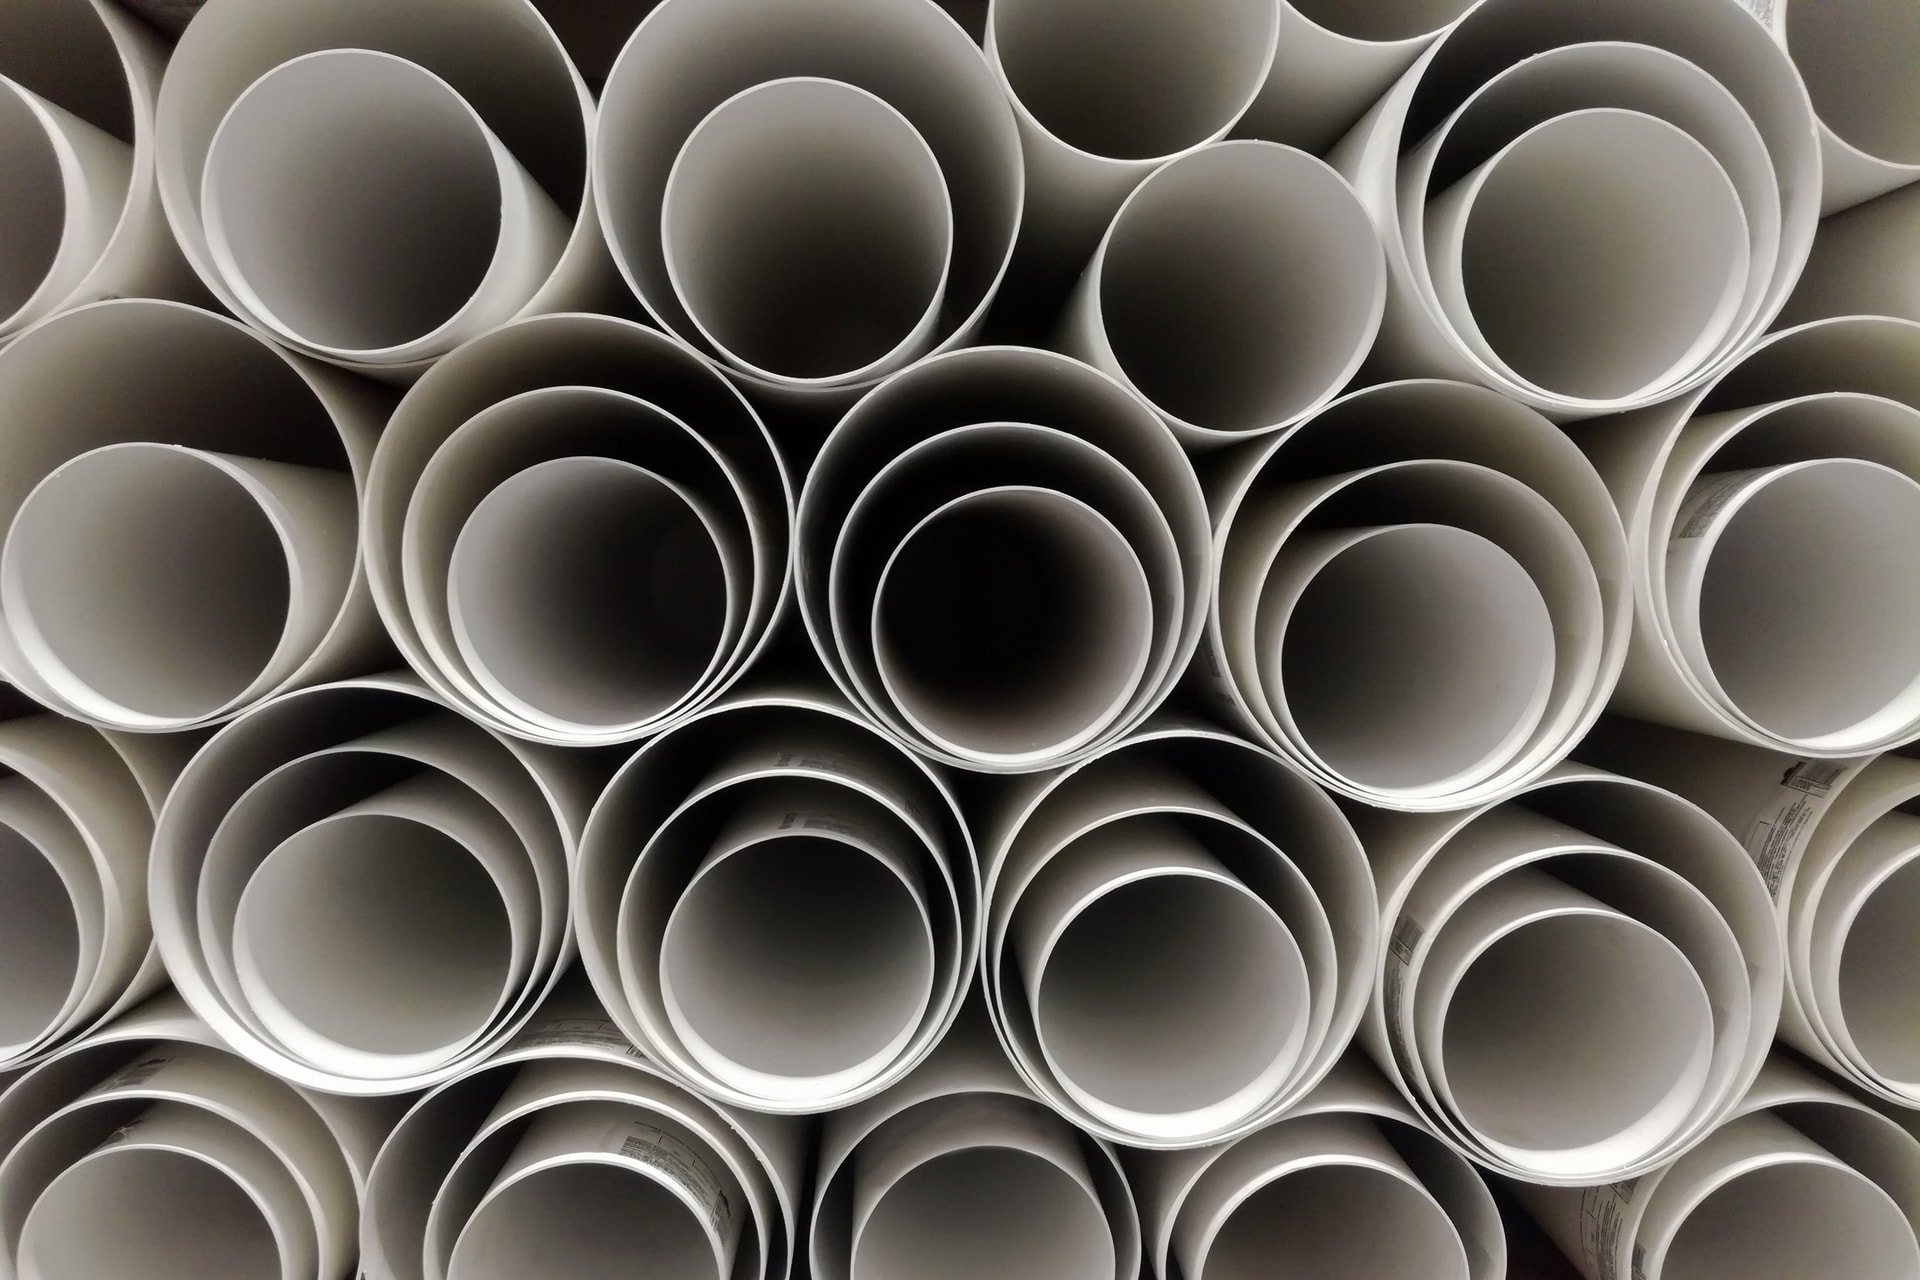 Polypropylene sheets rolled up into tubes stacked on each other